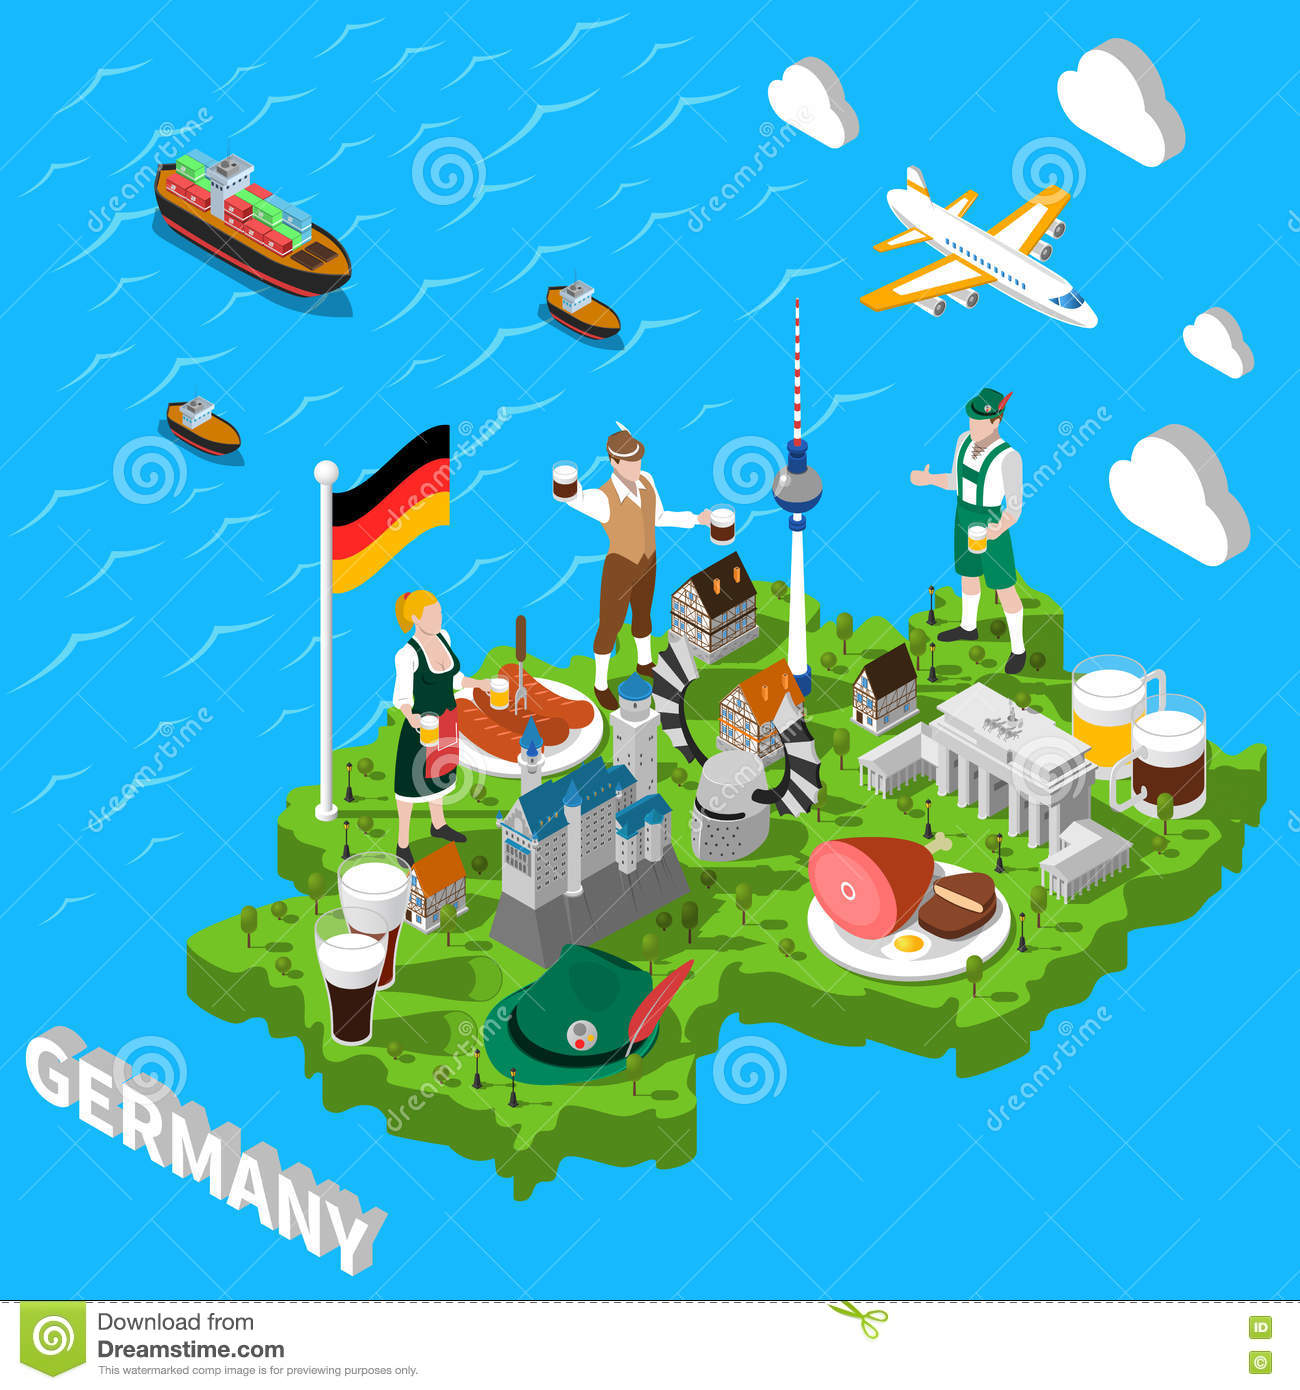 Germany Isometric Sightseeing Map For Tourists Vector – Germany Sightseeing Map